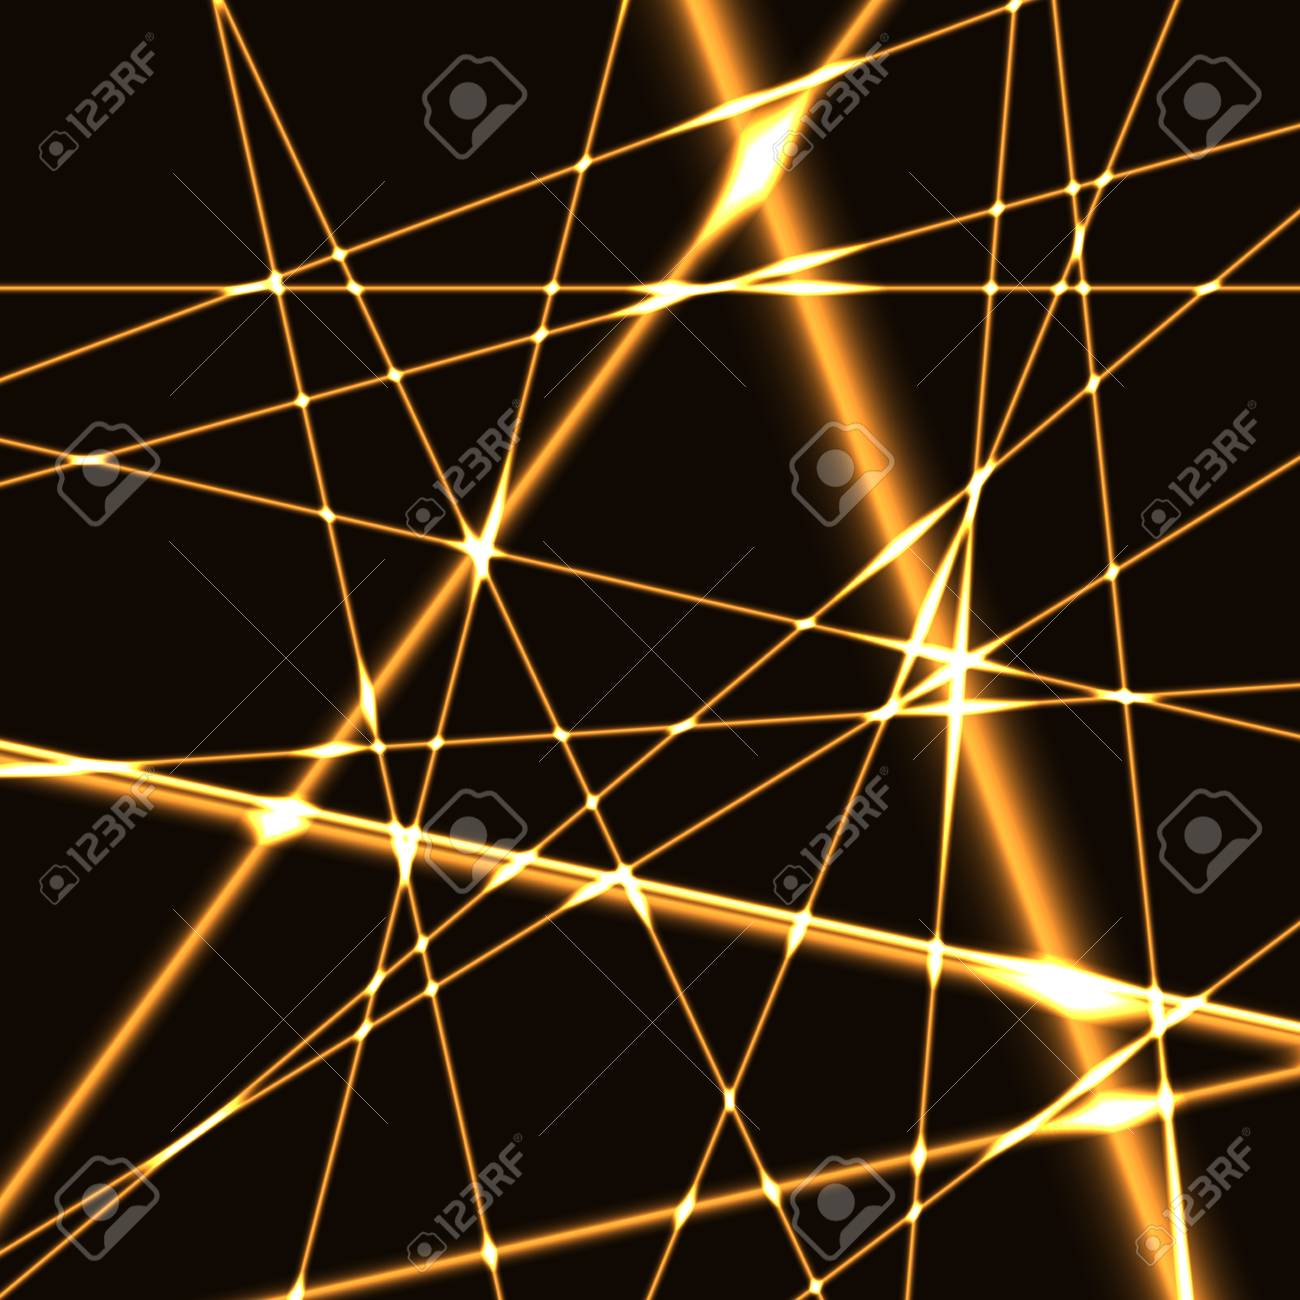 lighting beams. Golden Lighting Beams Of Laser On Dark Background. Technology Background With Light Rays Or Lines A